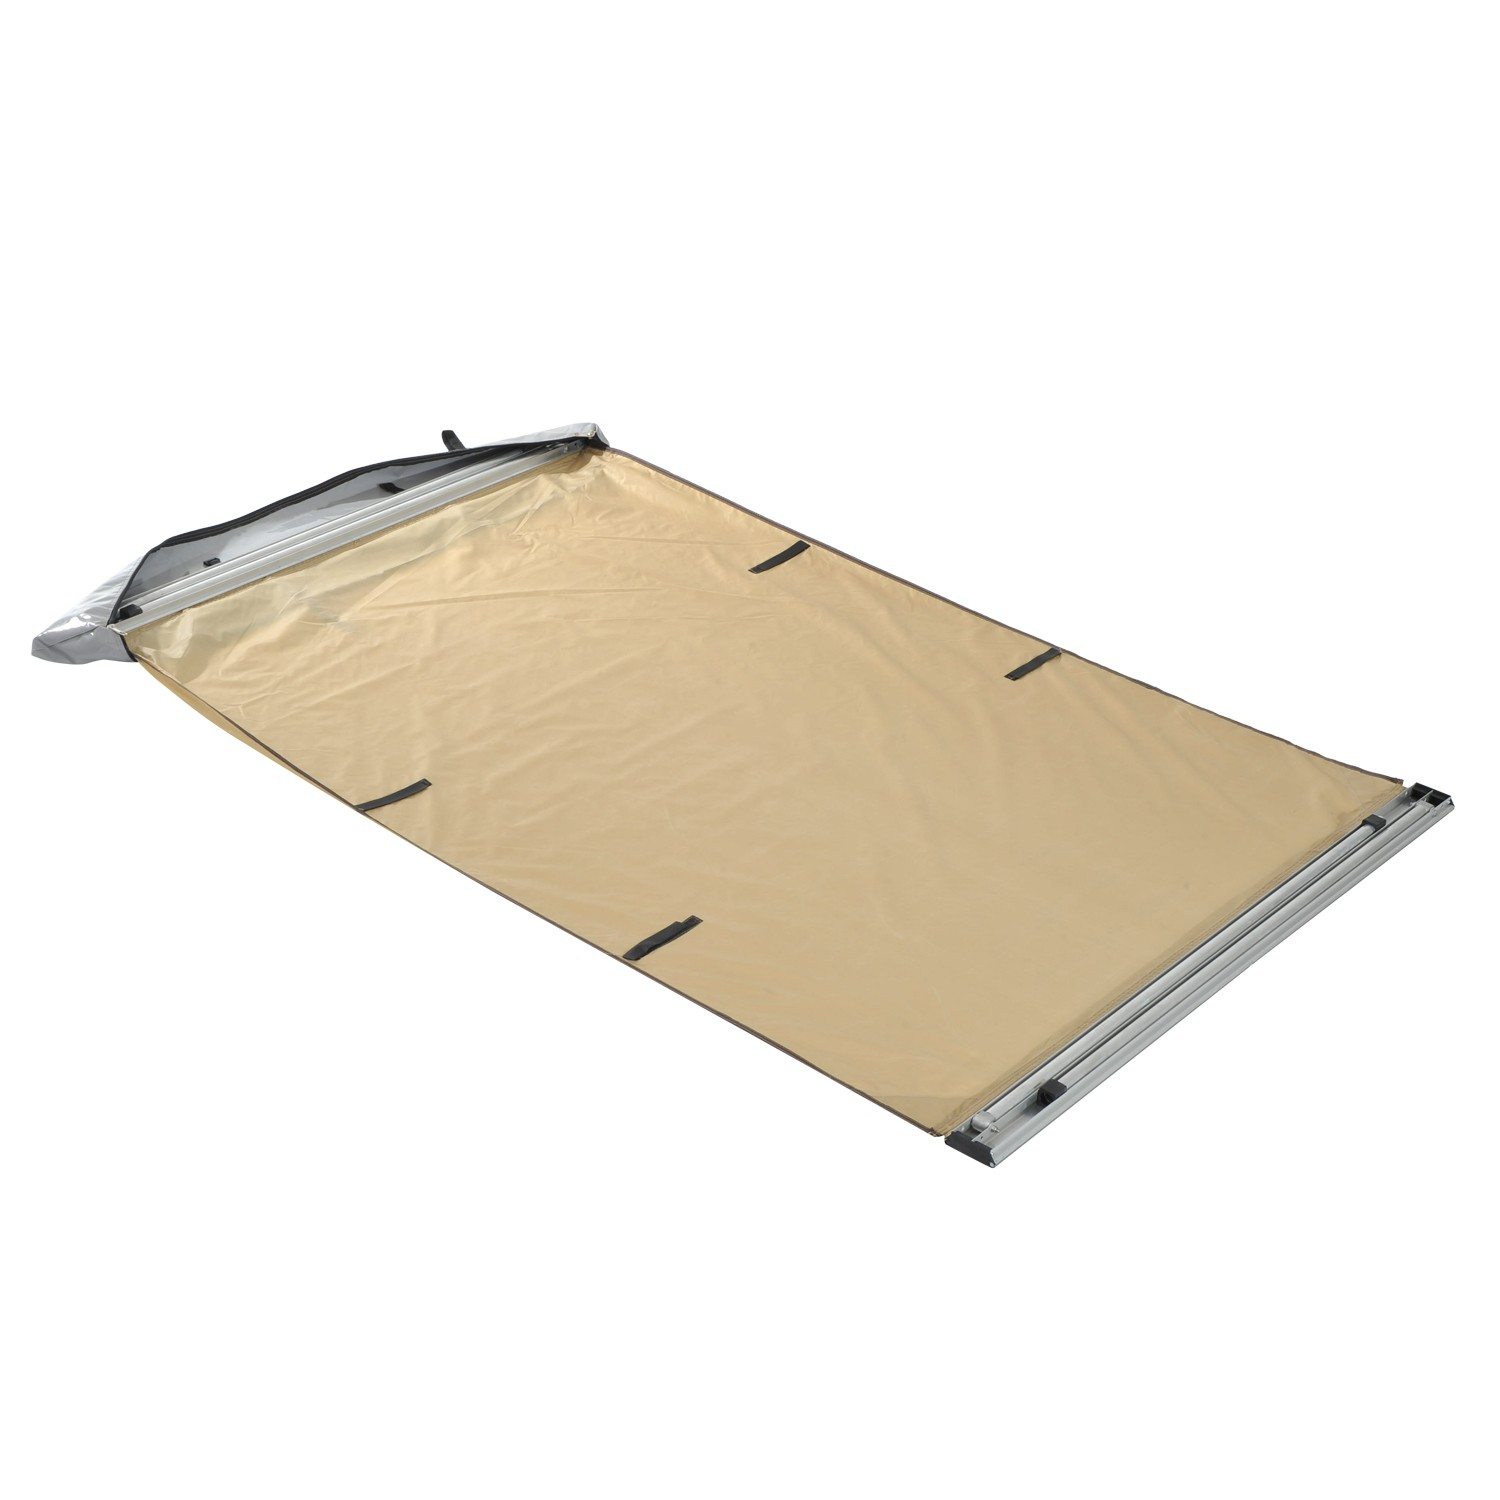 Car Awning - Portable Folding Retractable Rooftop Sun Shade Shelter (Small)  Sales Online brown - Tomtop